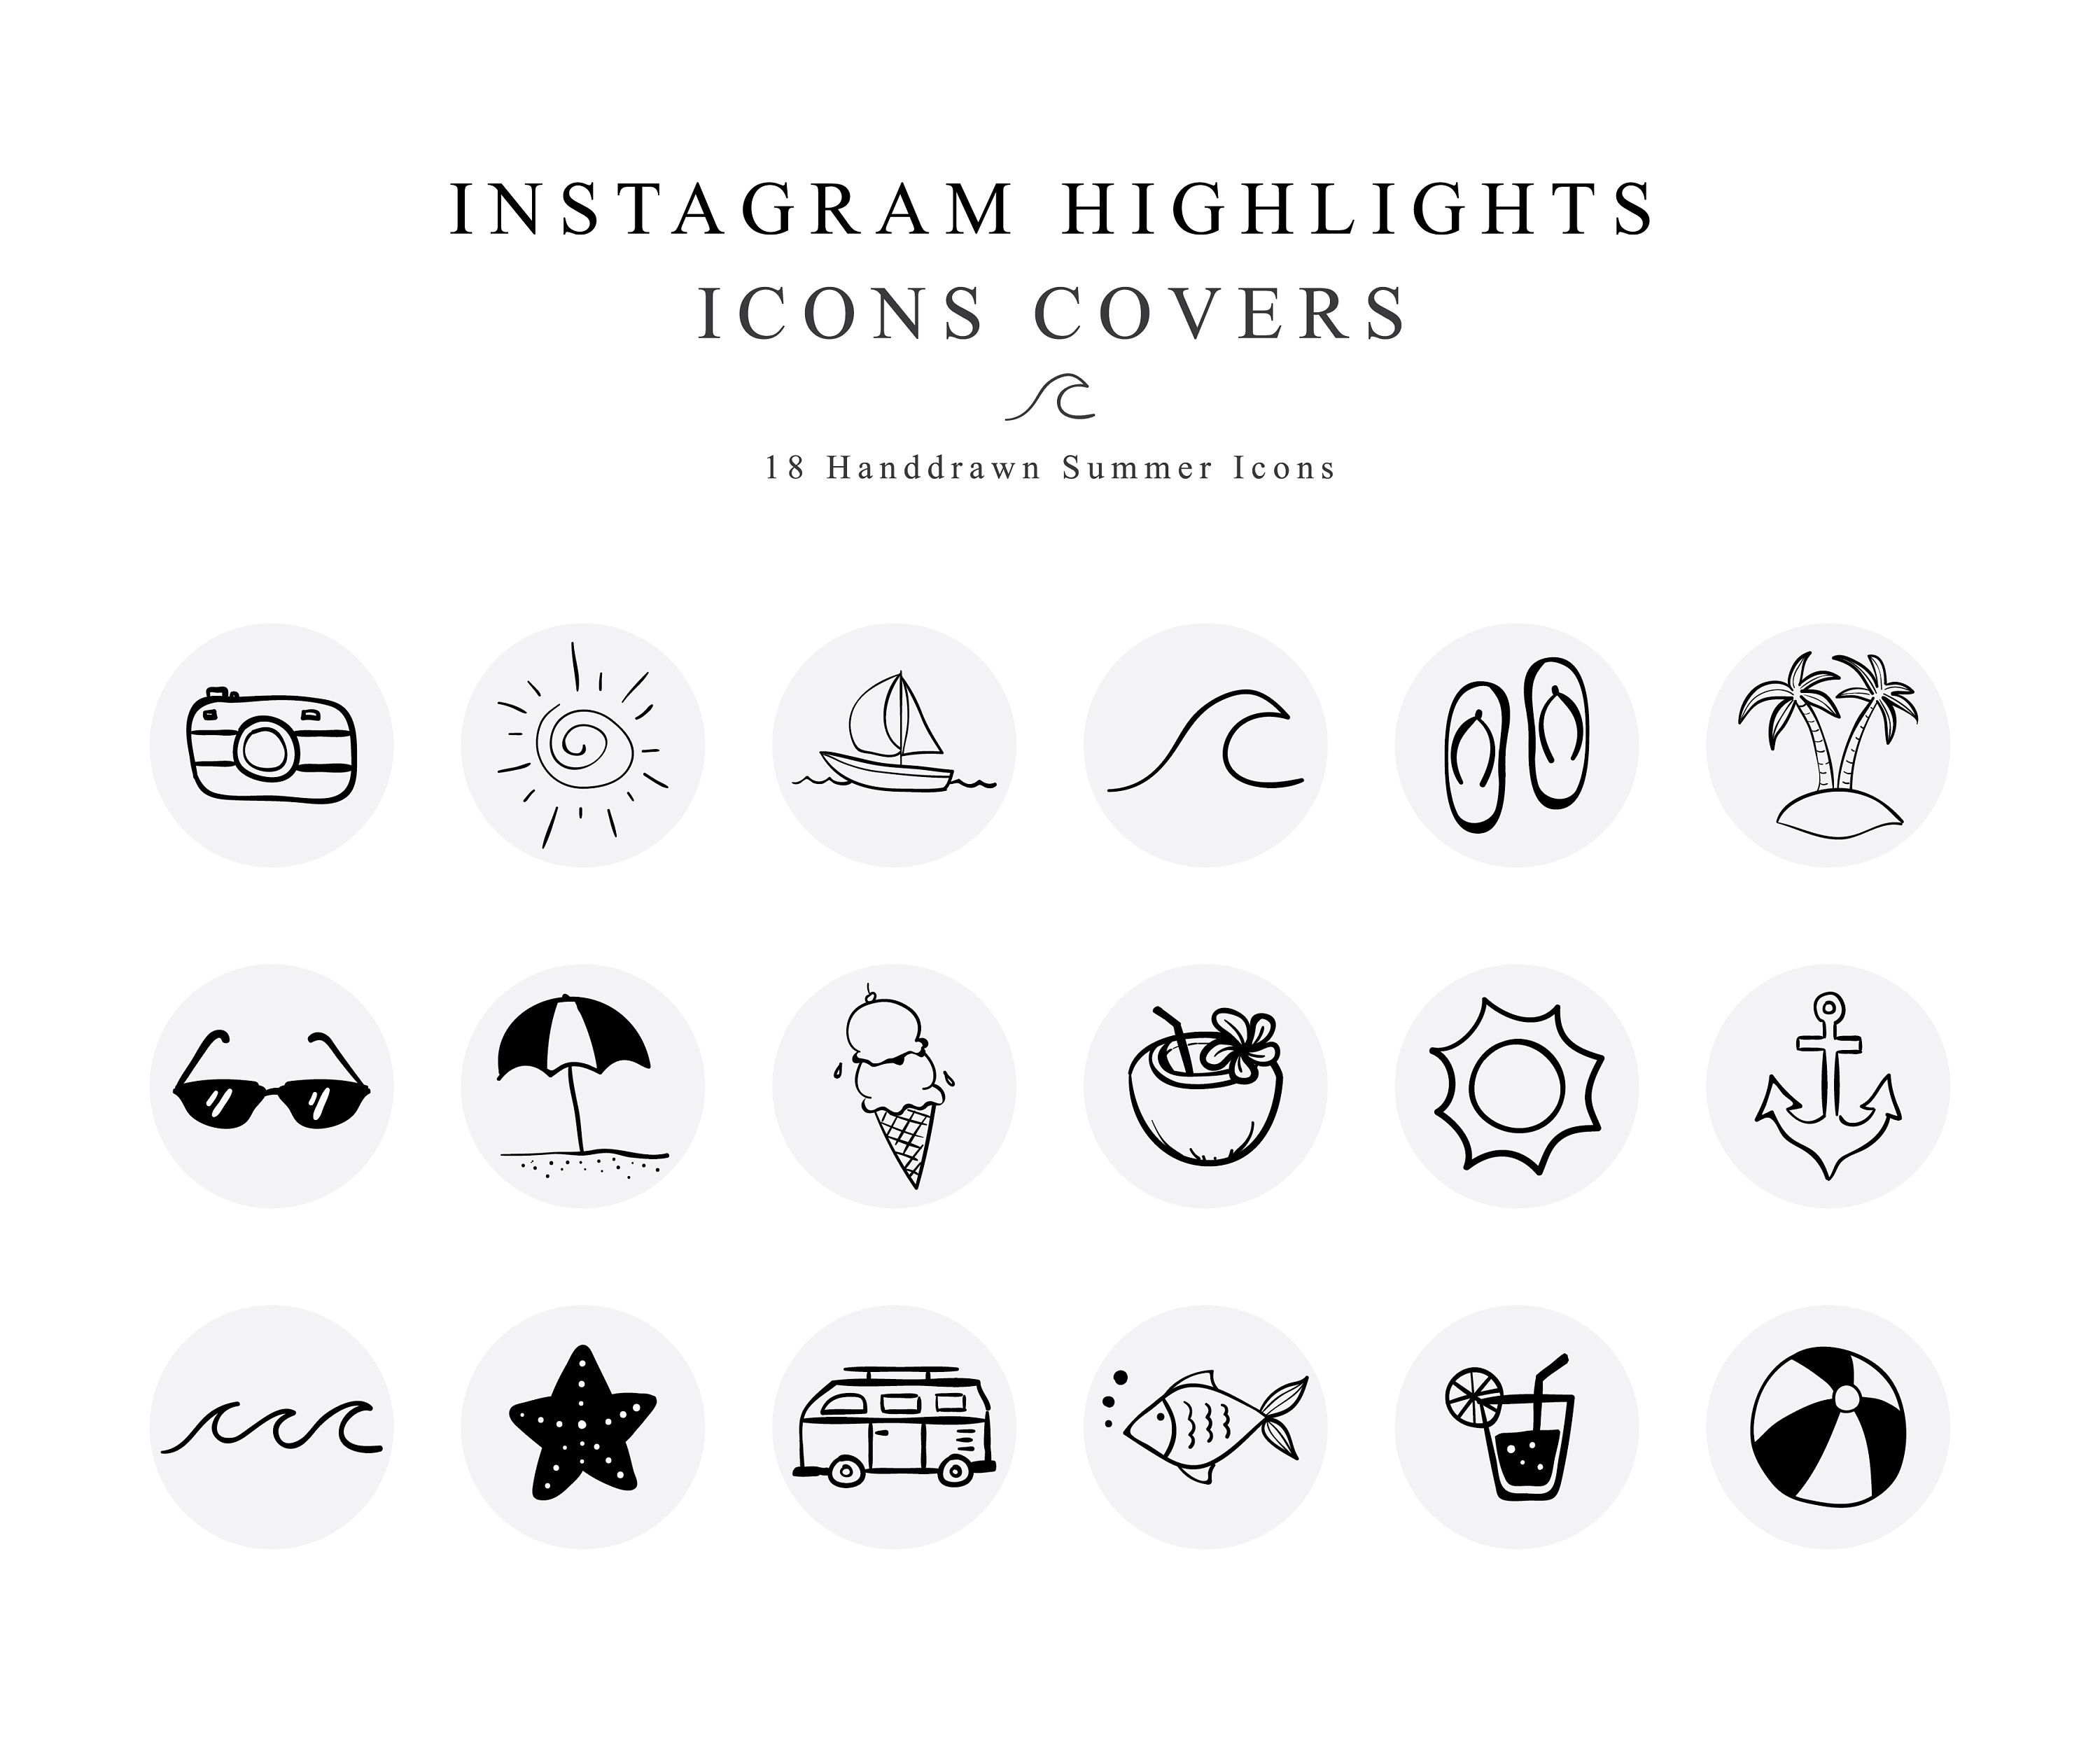 instagram story highlights covers summer vacation icons etsy in 2020 summer instagram instagram story instagram highlight icons instagram story instagram highlight icons